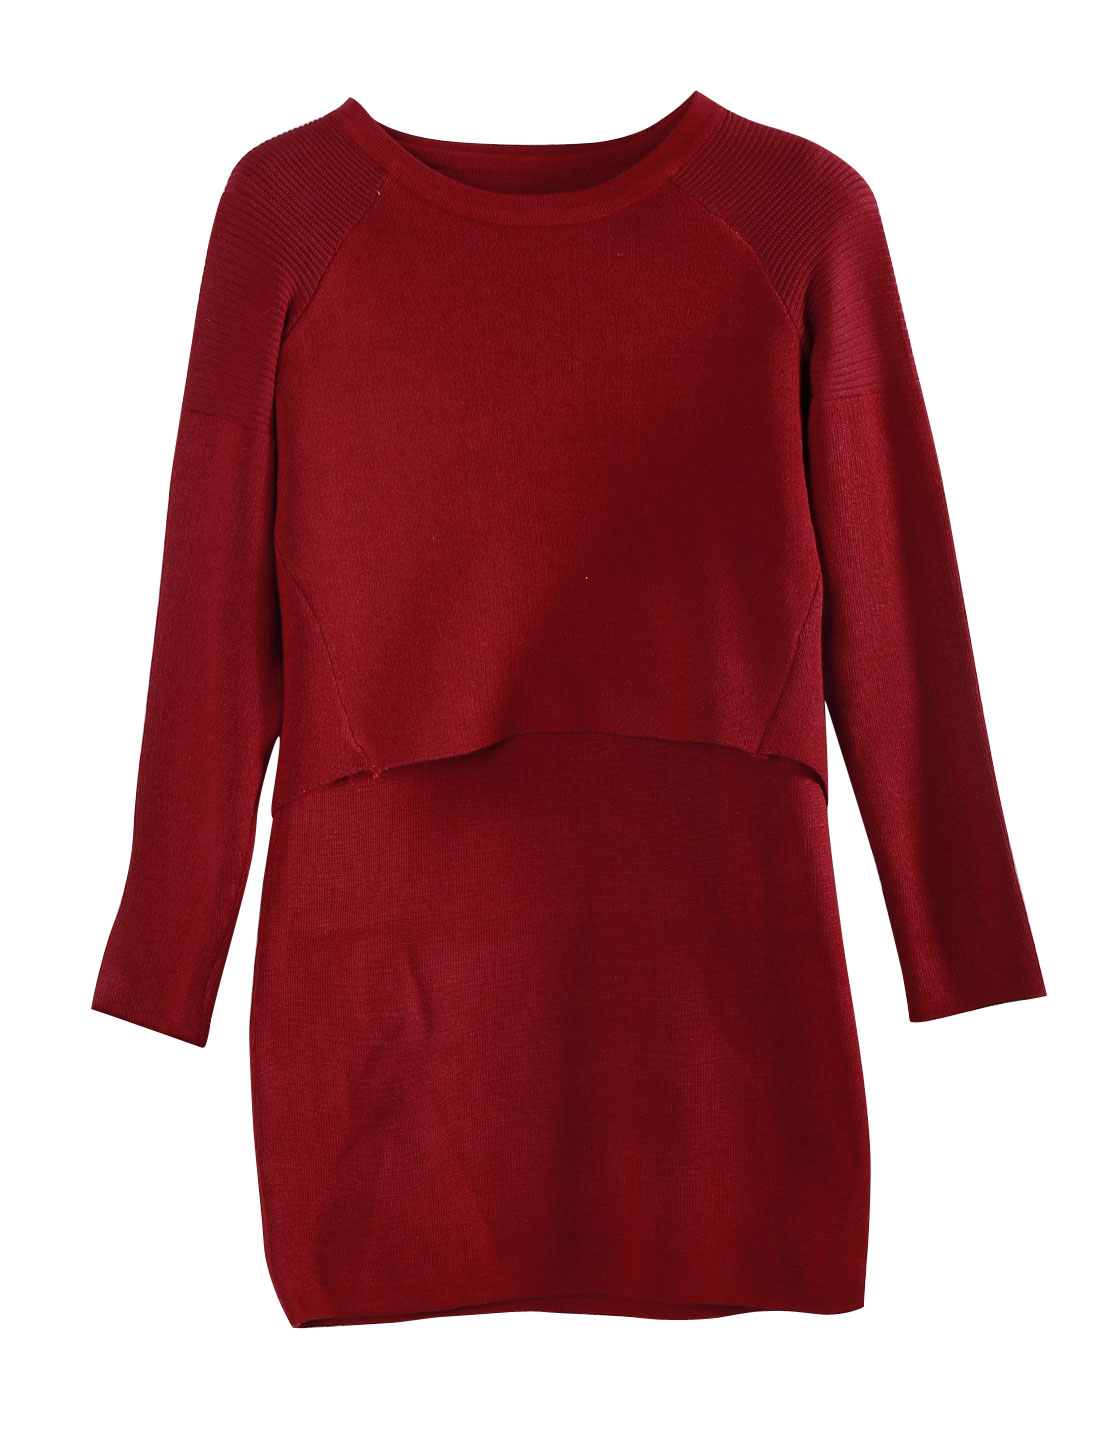 Women Round Neck knit Top w Sleeveless Knit Sheath Dress Burgundy S